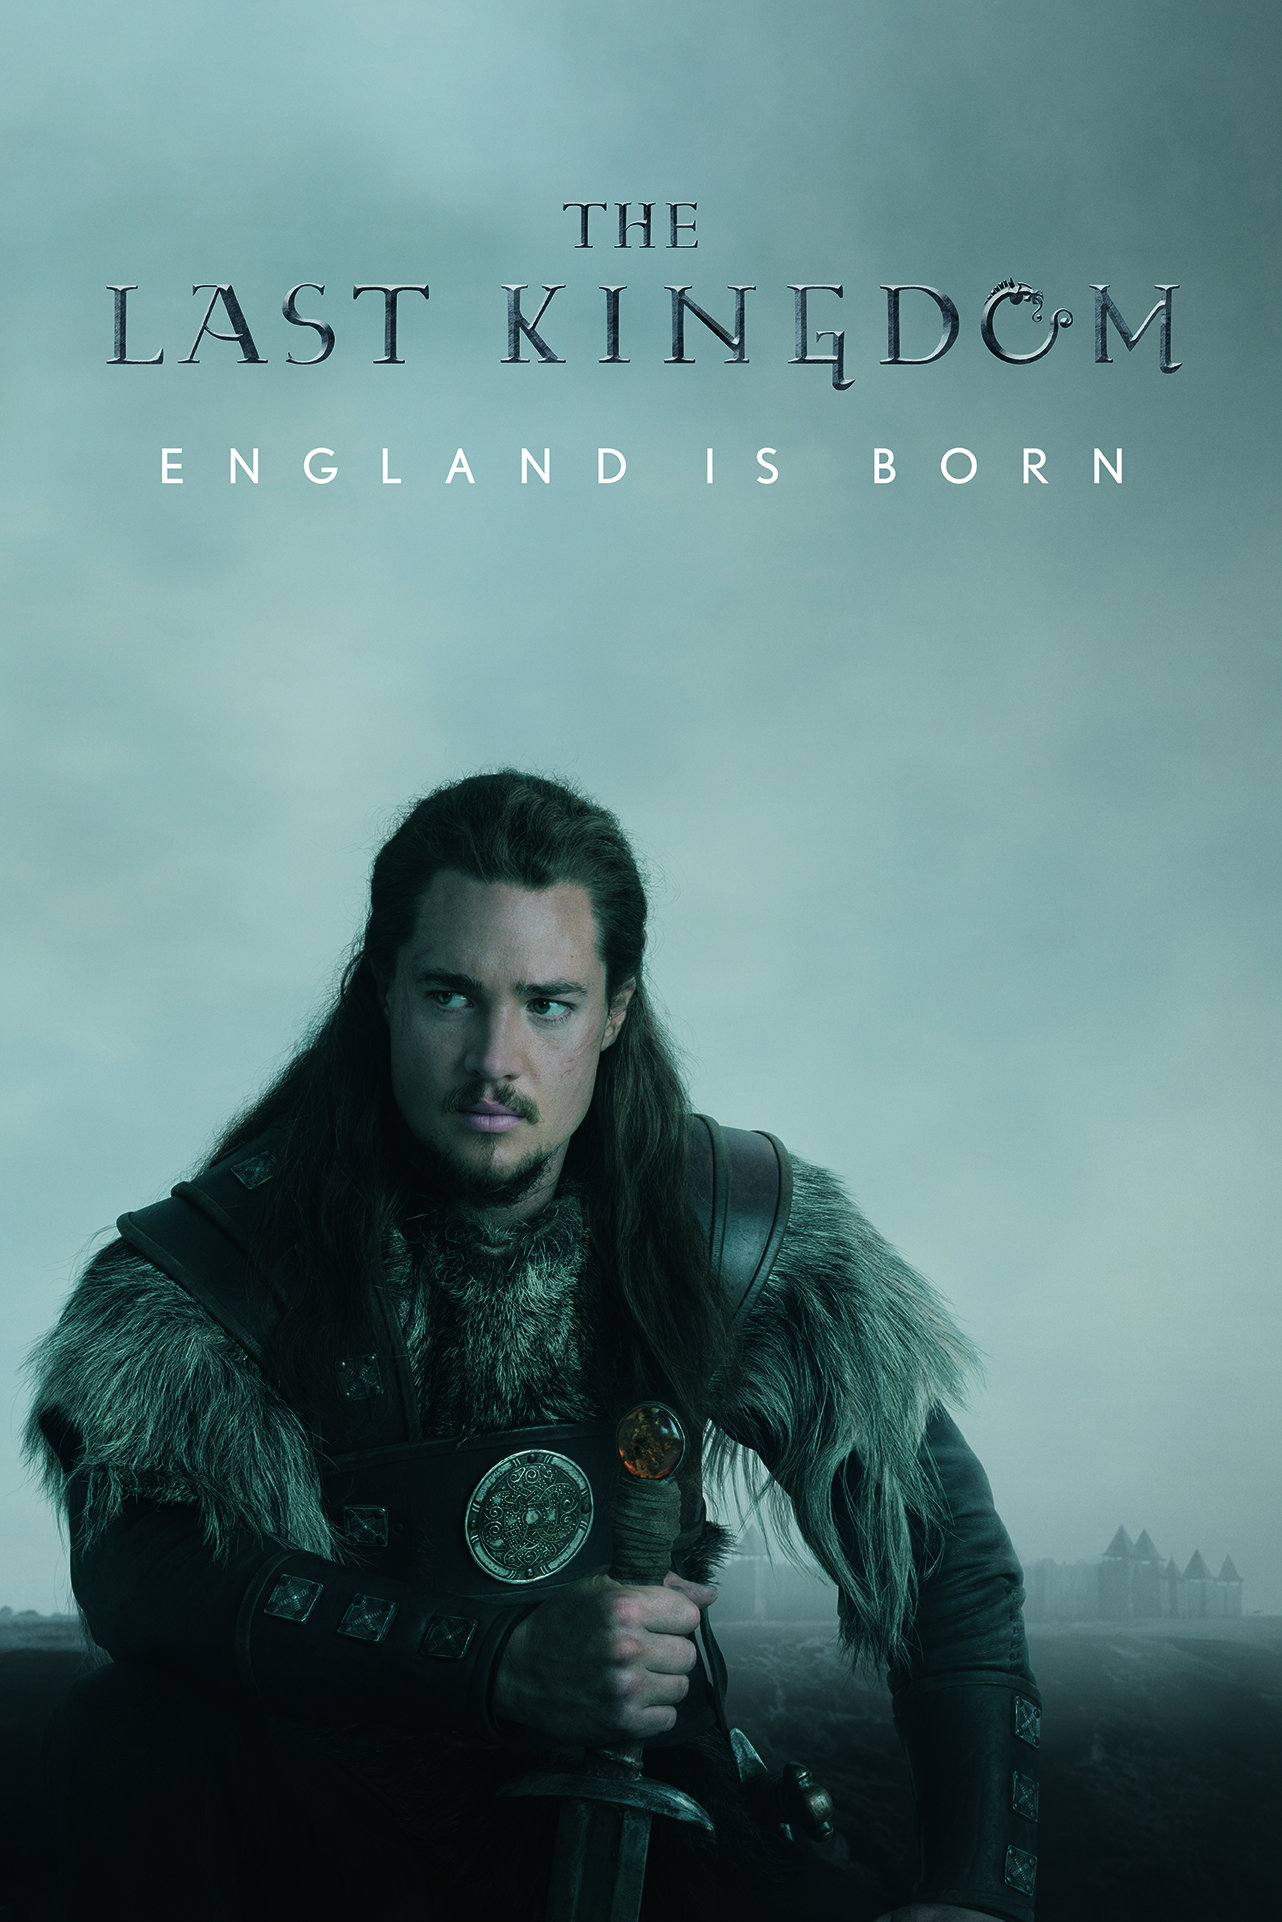 The Last Kingdom (TV Series 2015– ) - IMDb